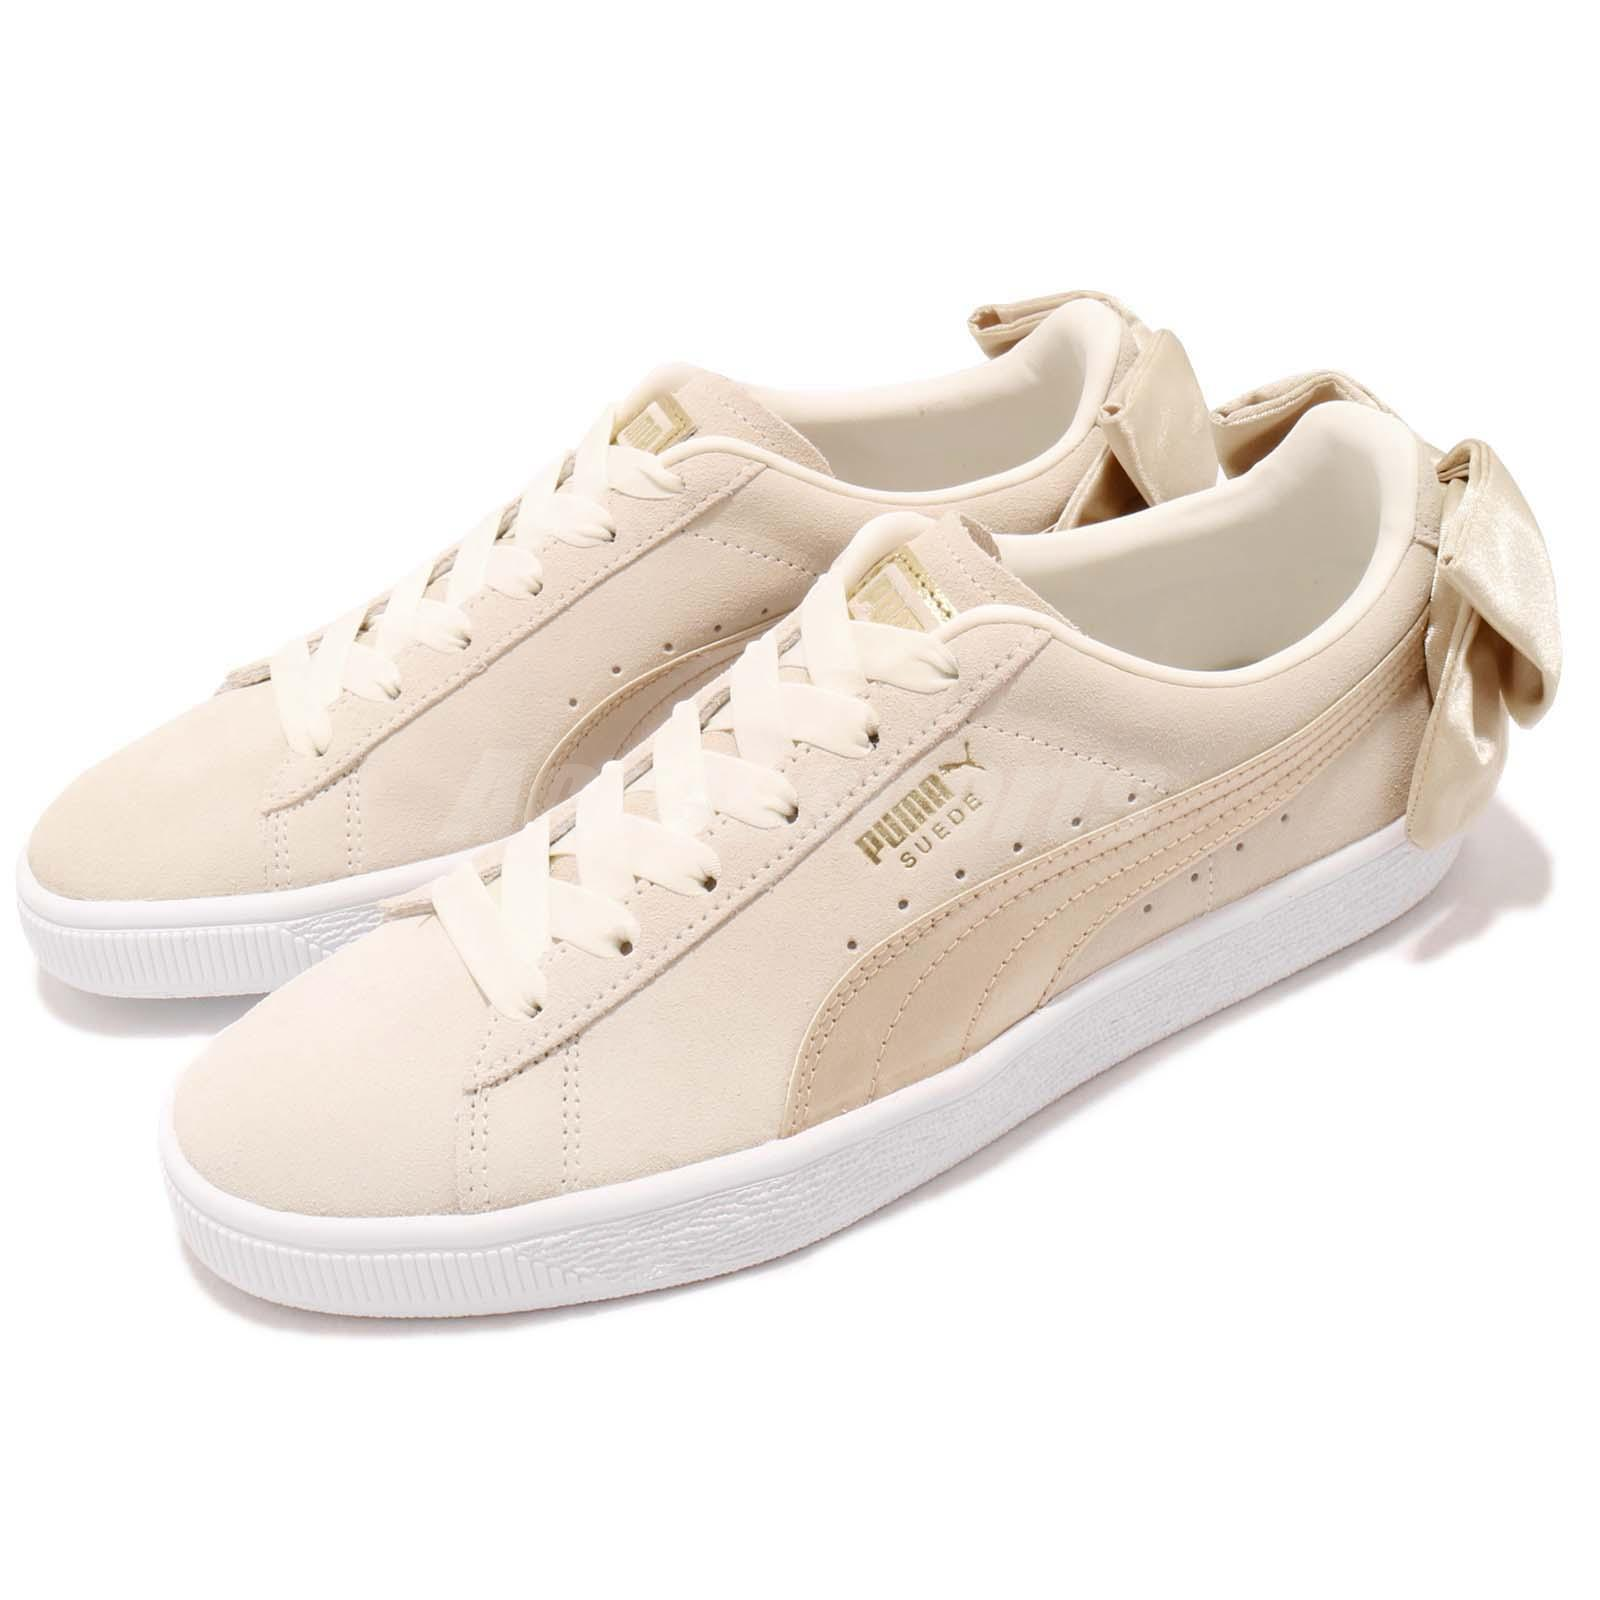 low priced 286f2 7ccc0 Details about Puma Suede Bow Varsity Wns Beige Gold Womens Casual Shoes  Sneakers 367732-03